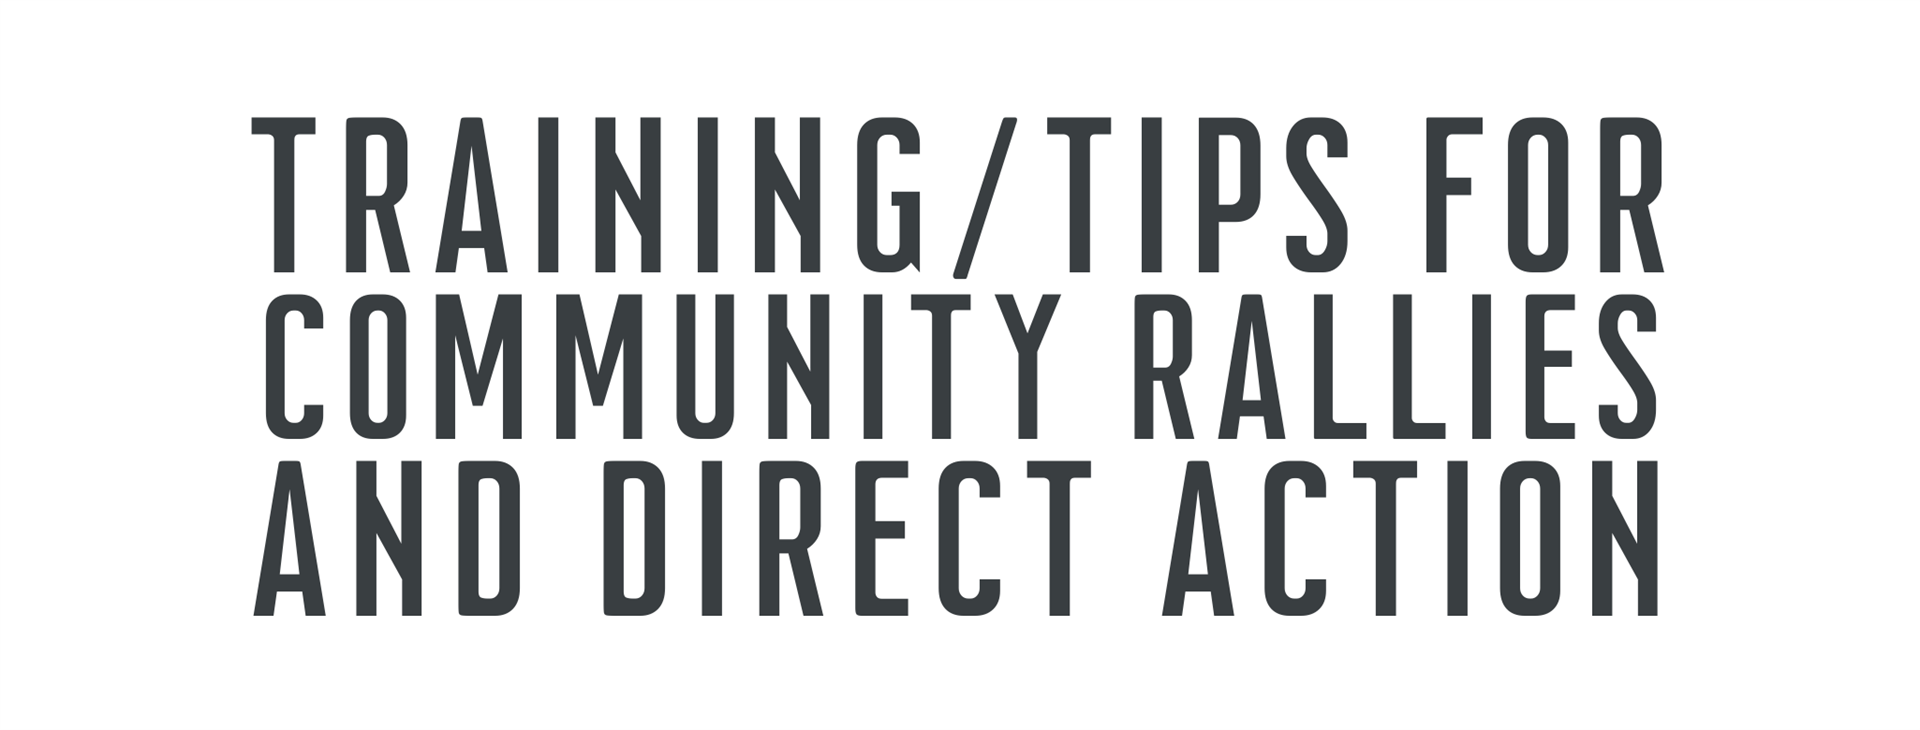 Training/Tips for Community Rallies and Direct Action